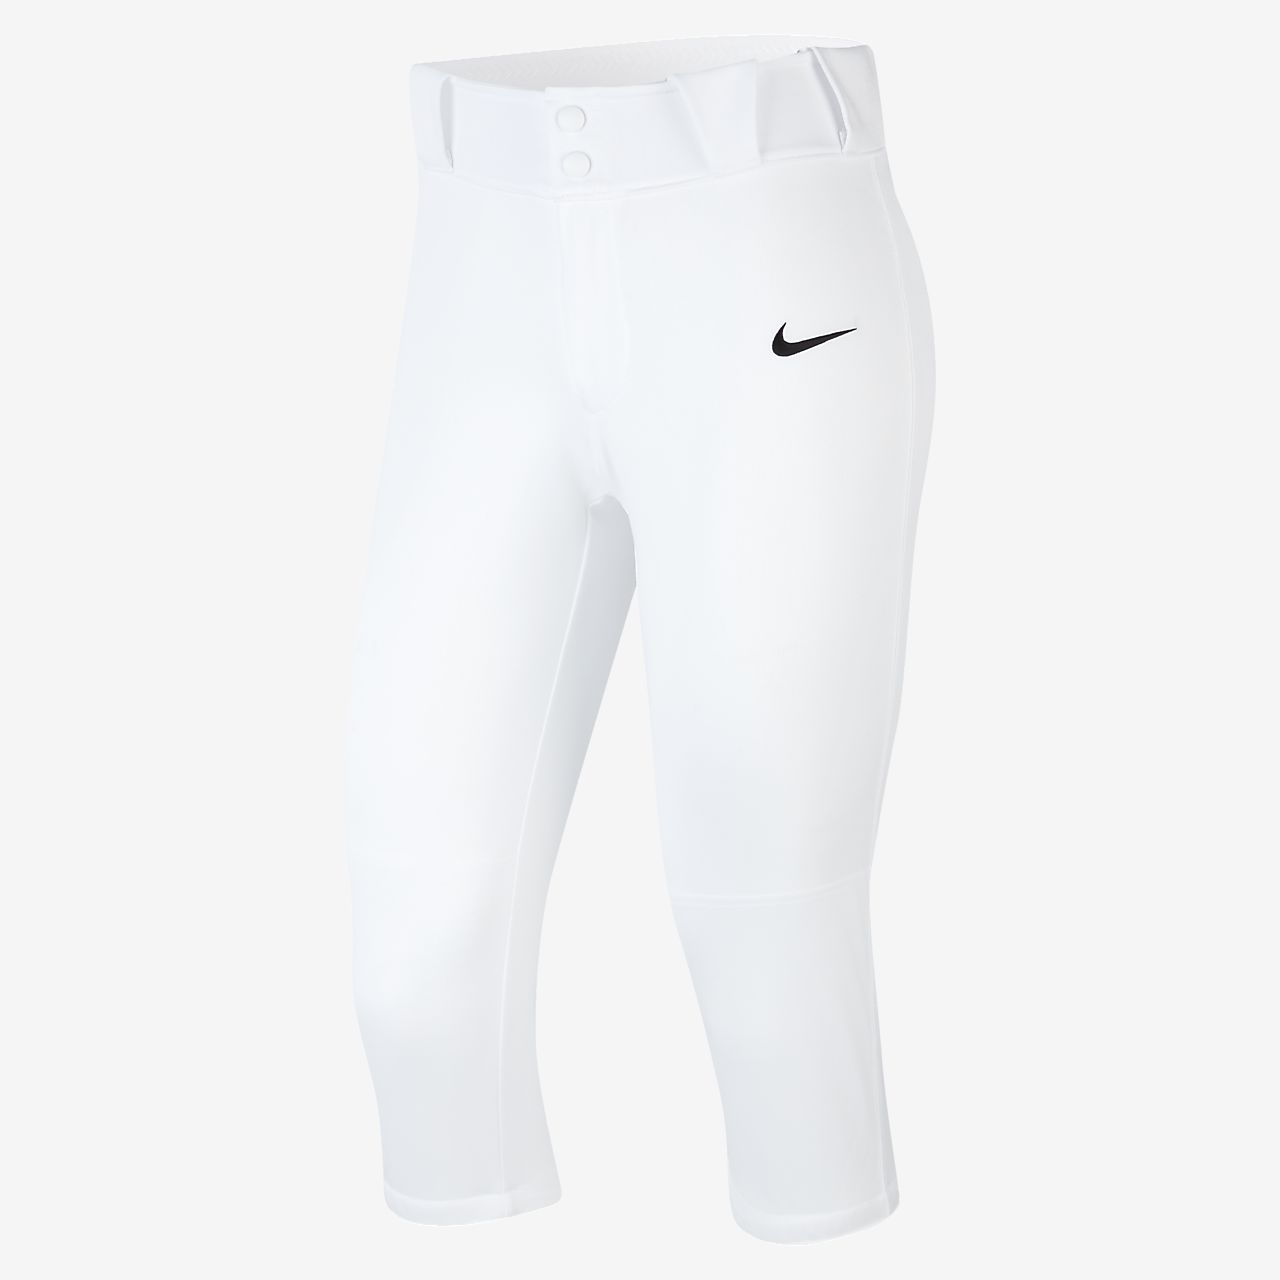 02d6b1fff Nike Diamond Invader 3/4 Women's Softball Pants. Nike.com